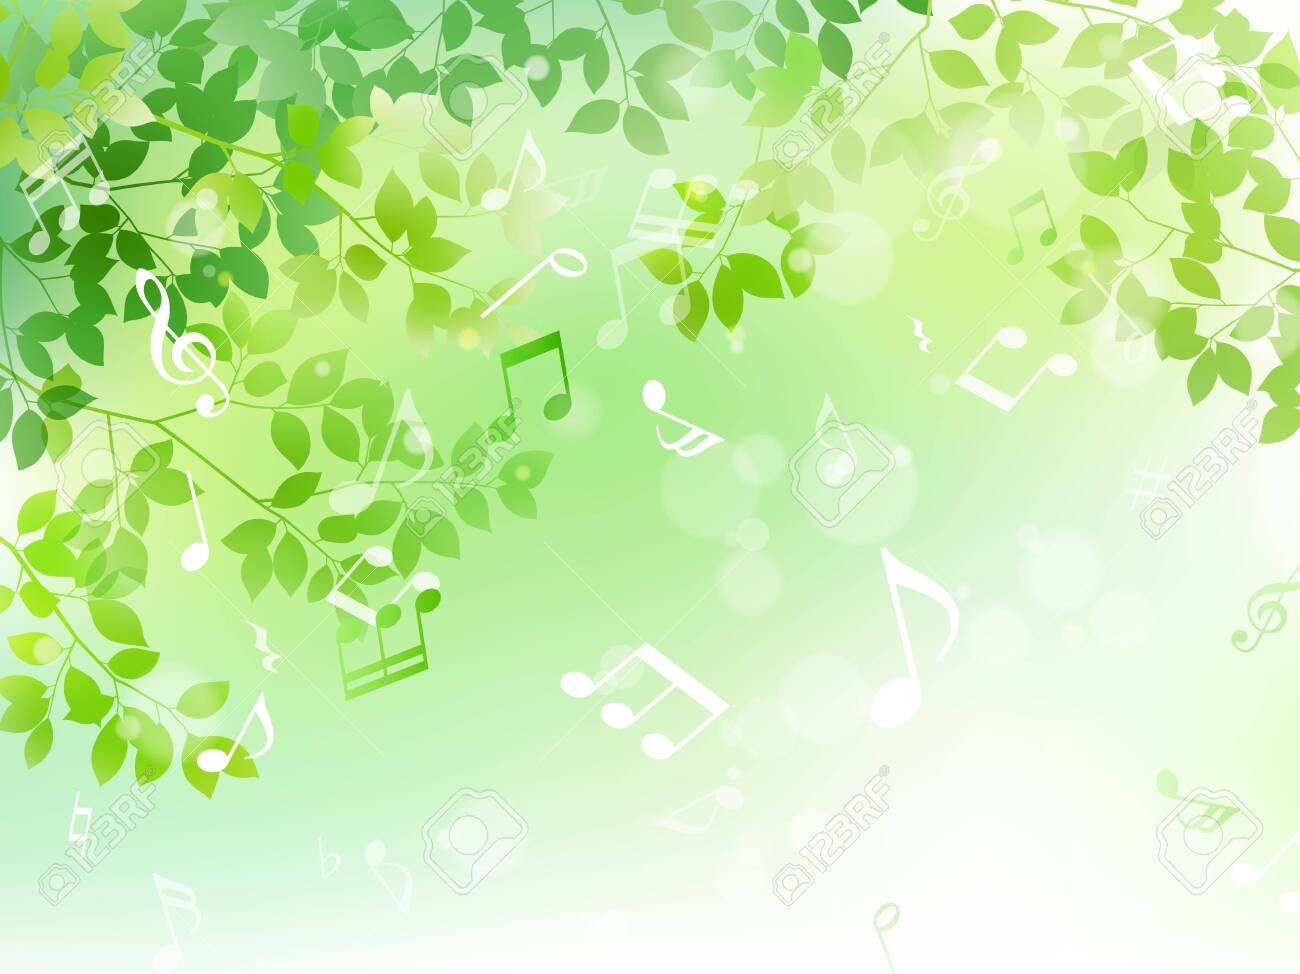 Green leaf and music note sunbeam image - 128476786